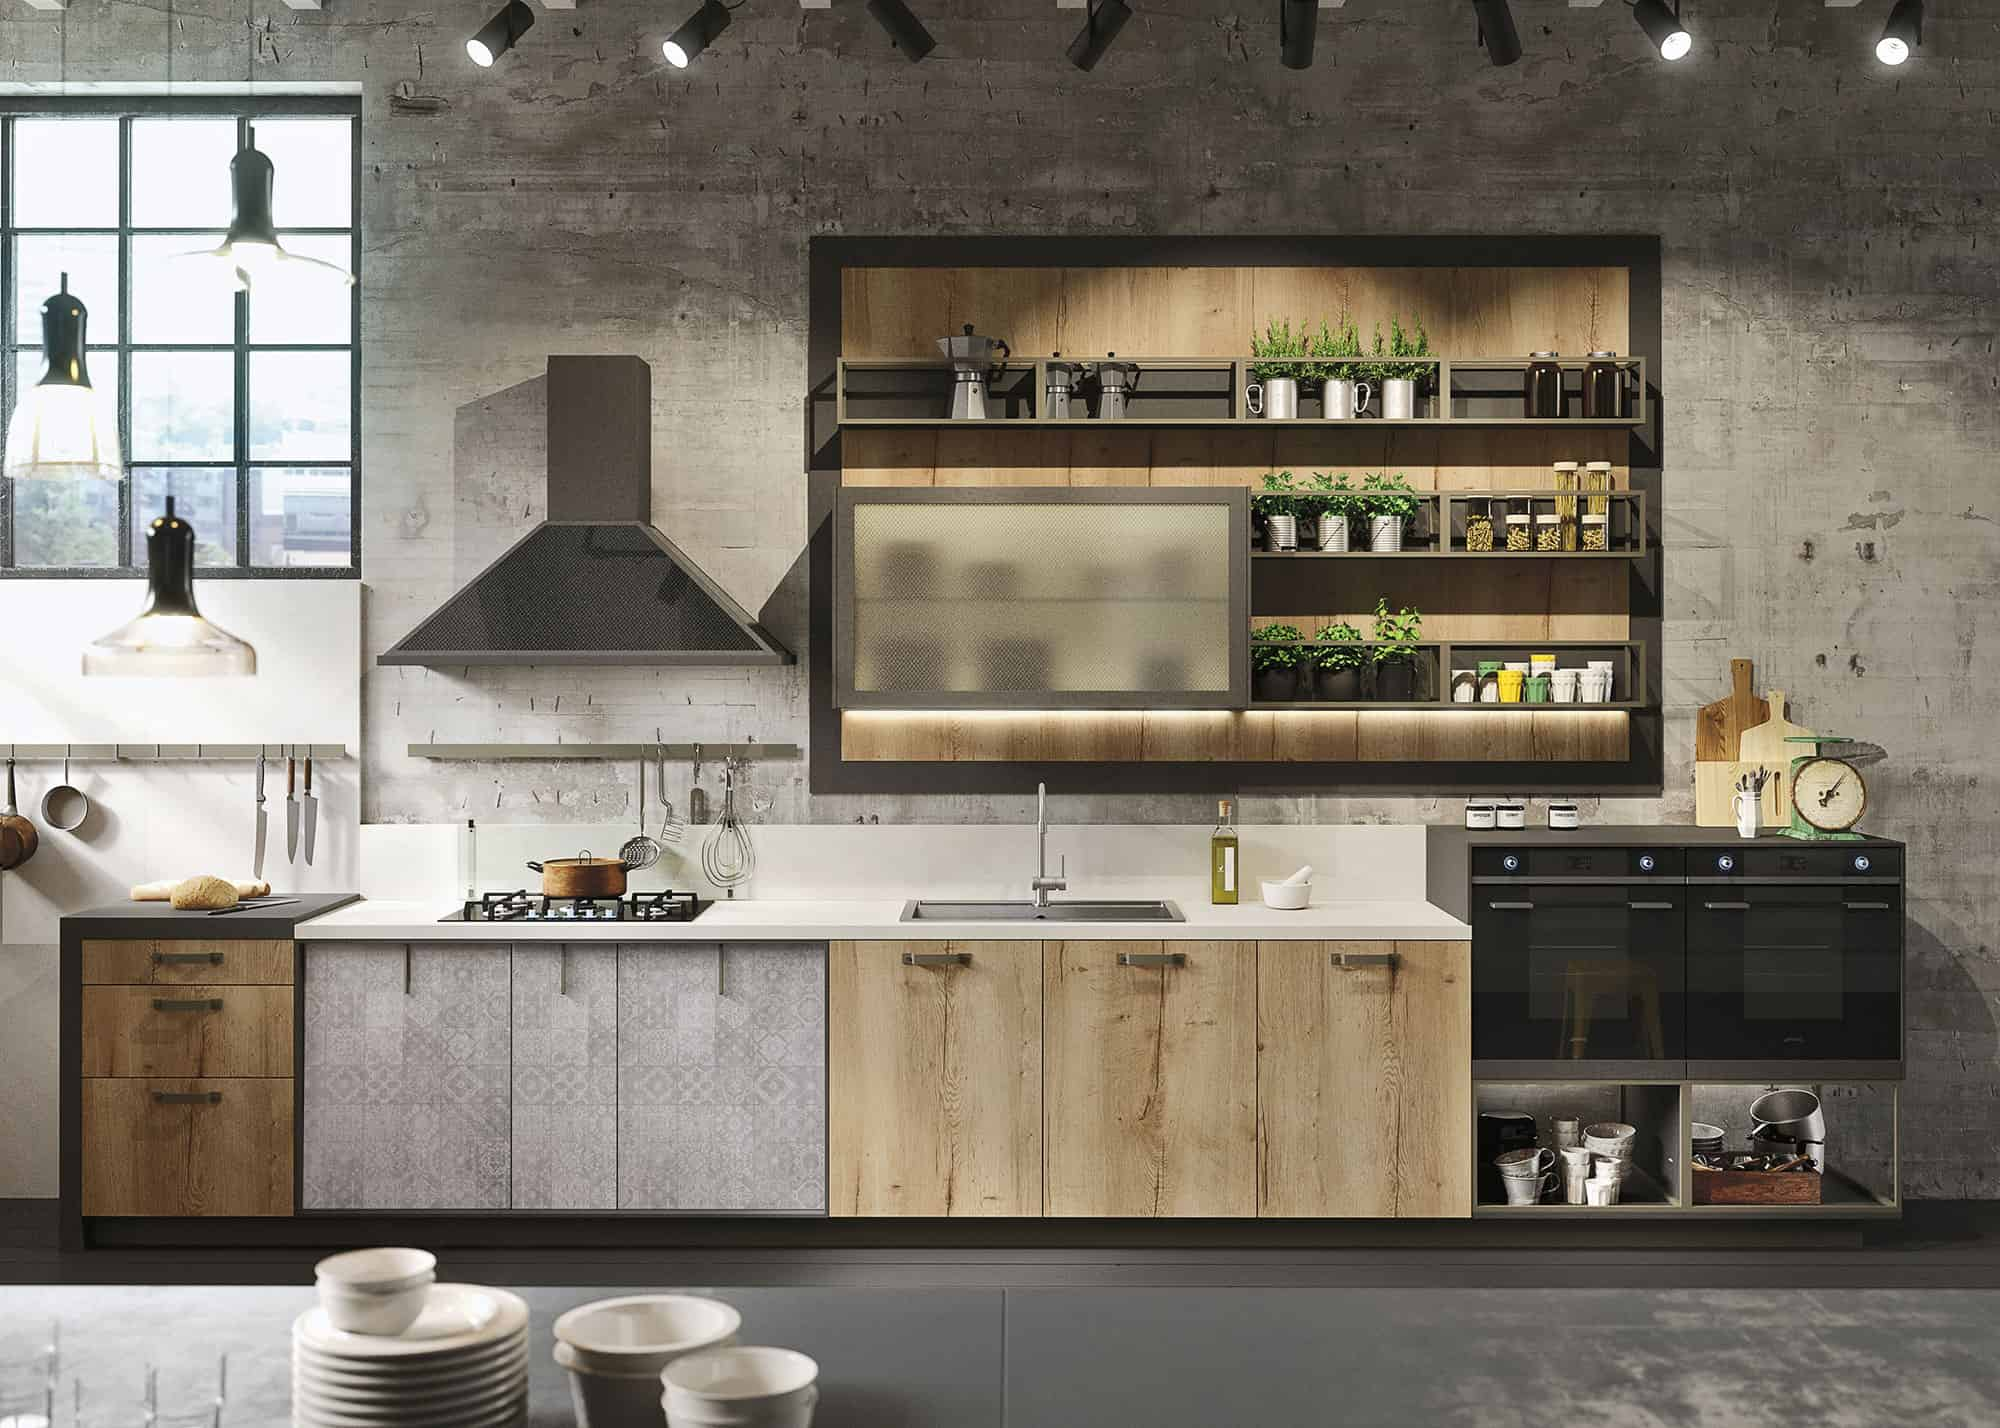 Genial All Of The Snaidero Loft Kitchens Come With Graphic Panels That Can Be Used  In Conjunction With The Wood Look Doors And Drawers, And The Graphic  Pattern In ...